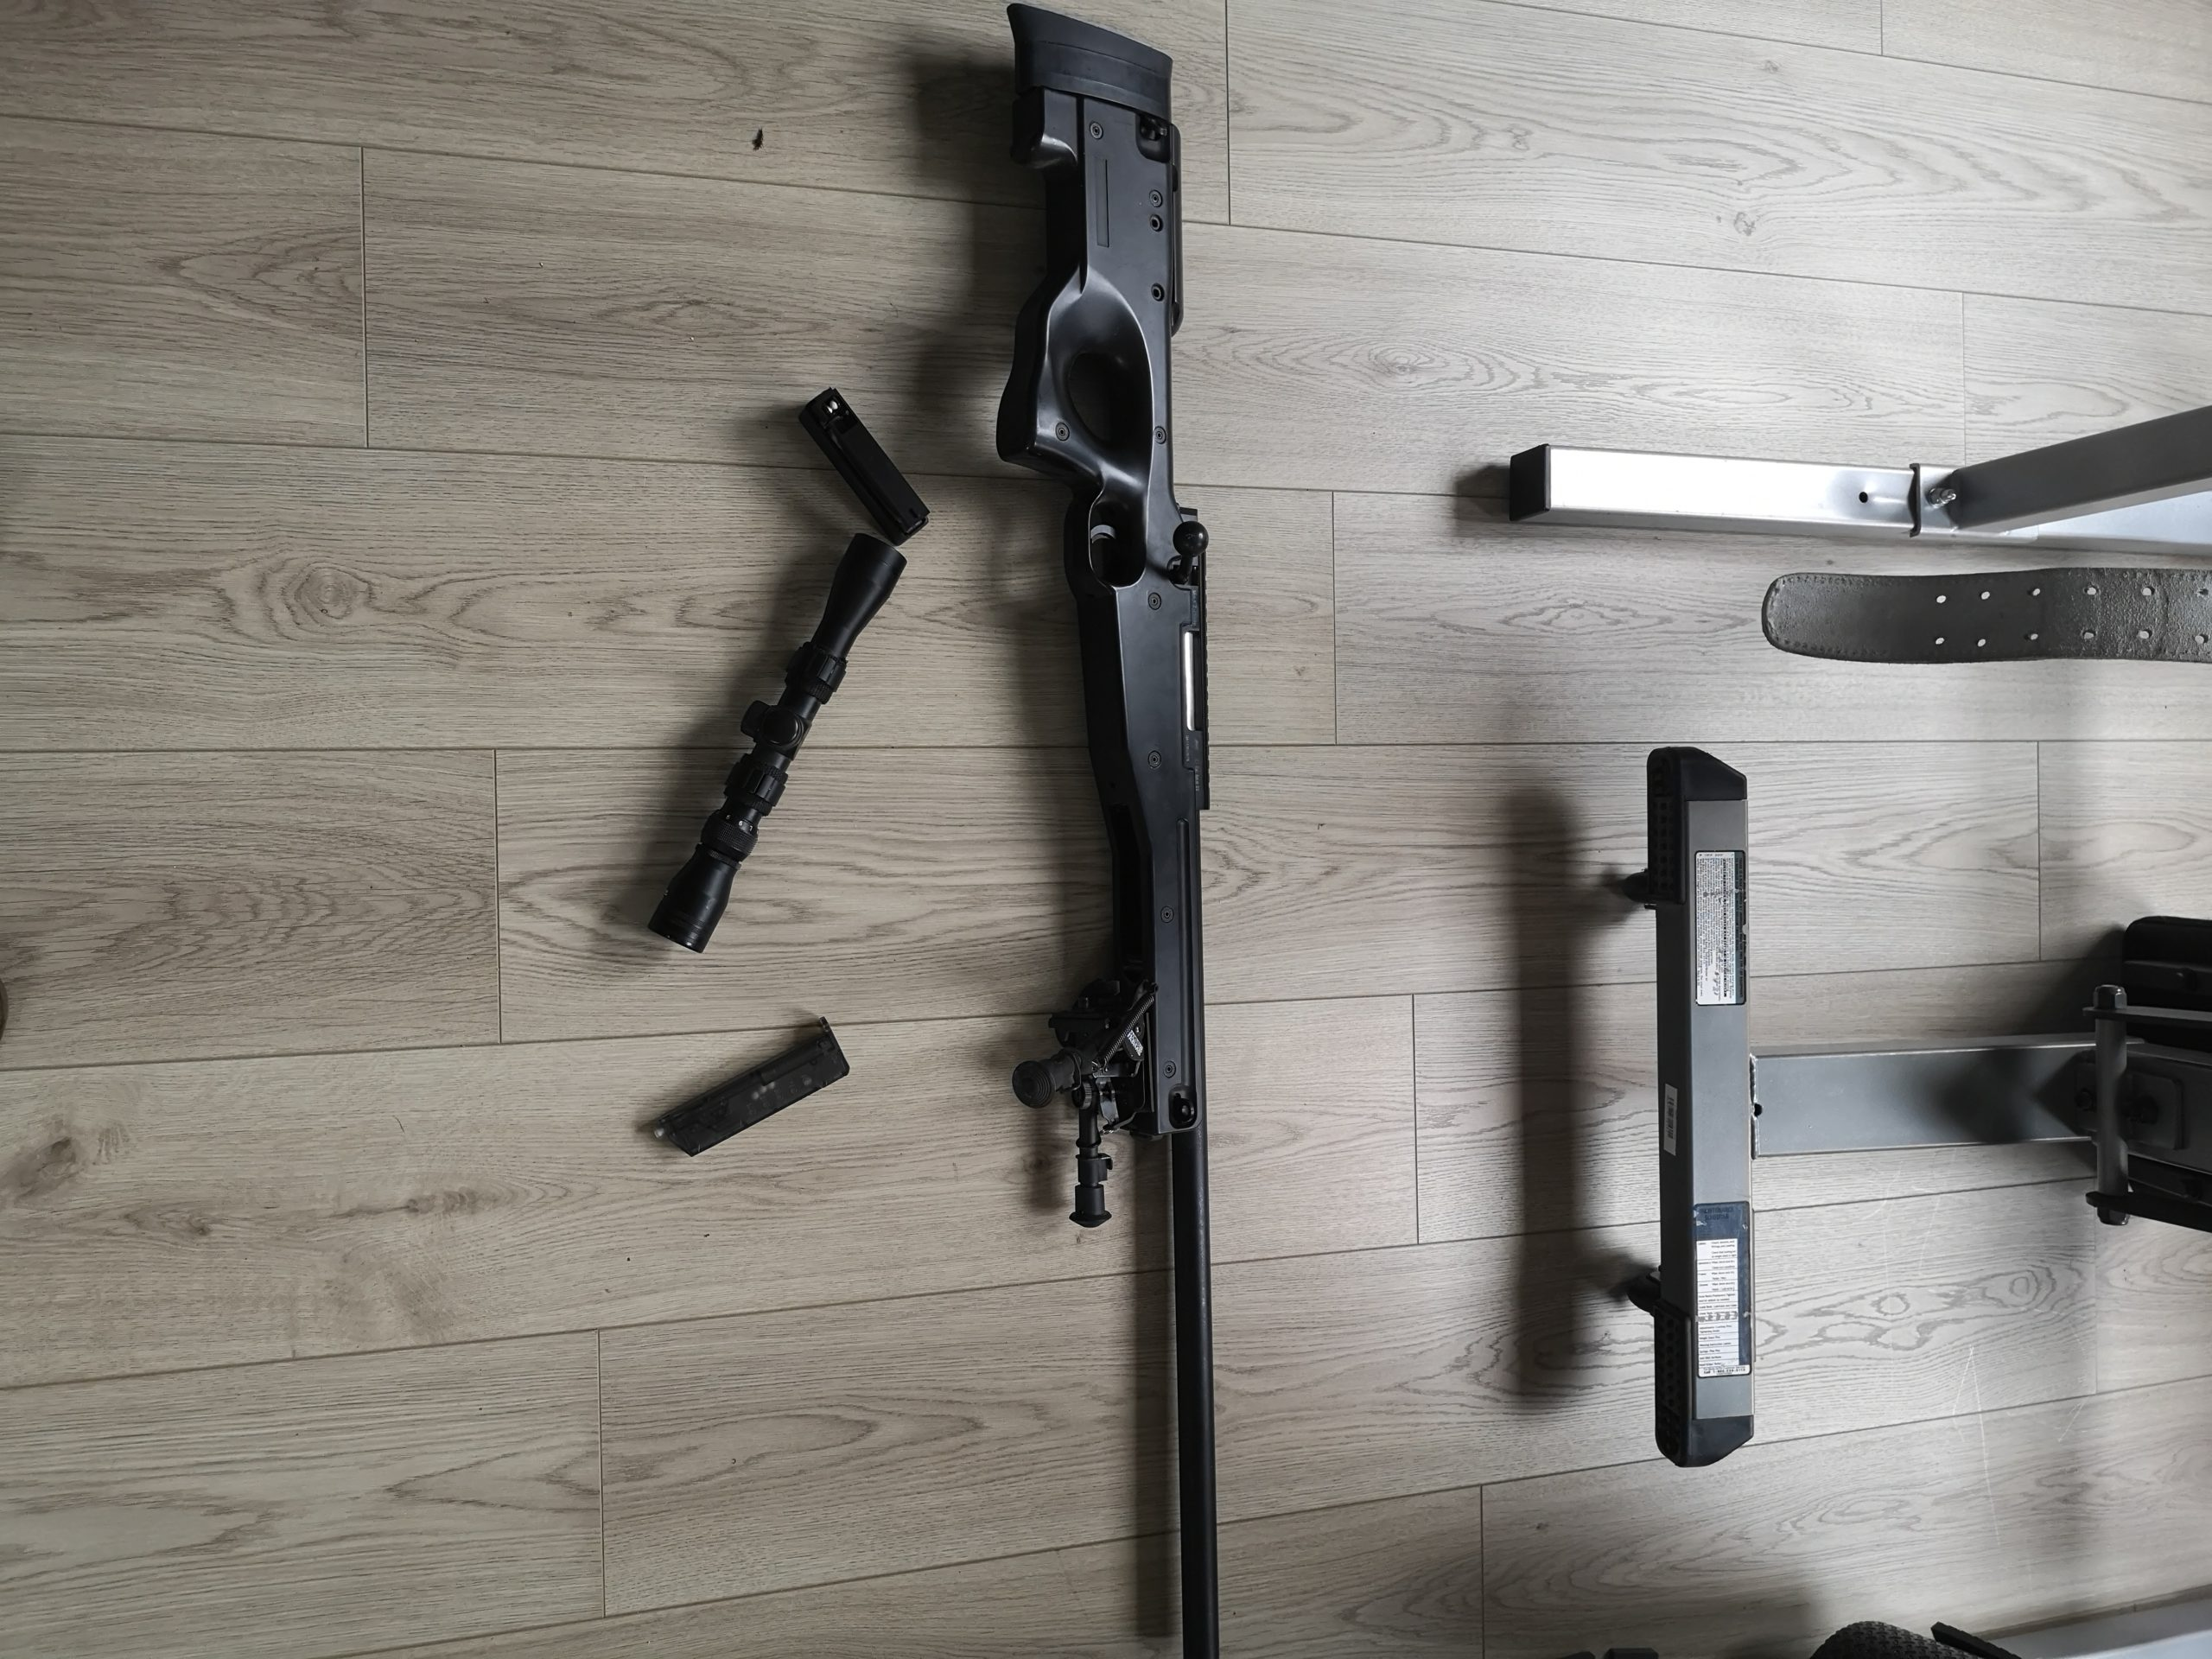 Mauser tactical